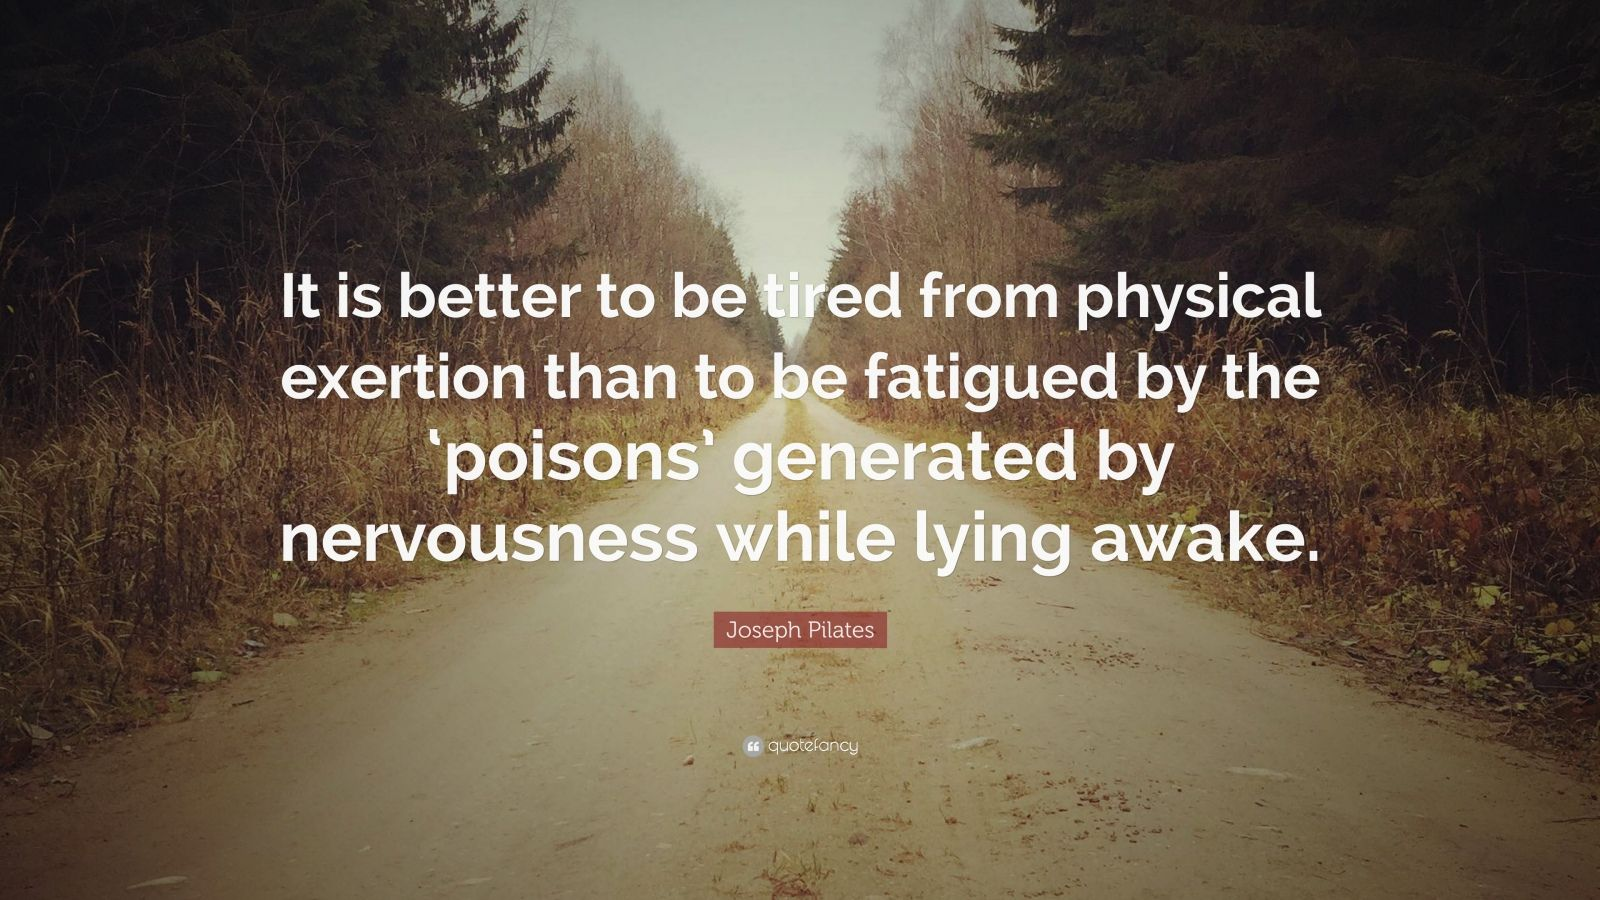 """Joseph Pilates Quote: """"It is better to be tired from physical exertion than to be fatigued by the 'poisons' generated by nervousness while lying awake."""""""